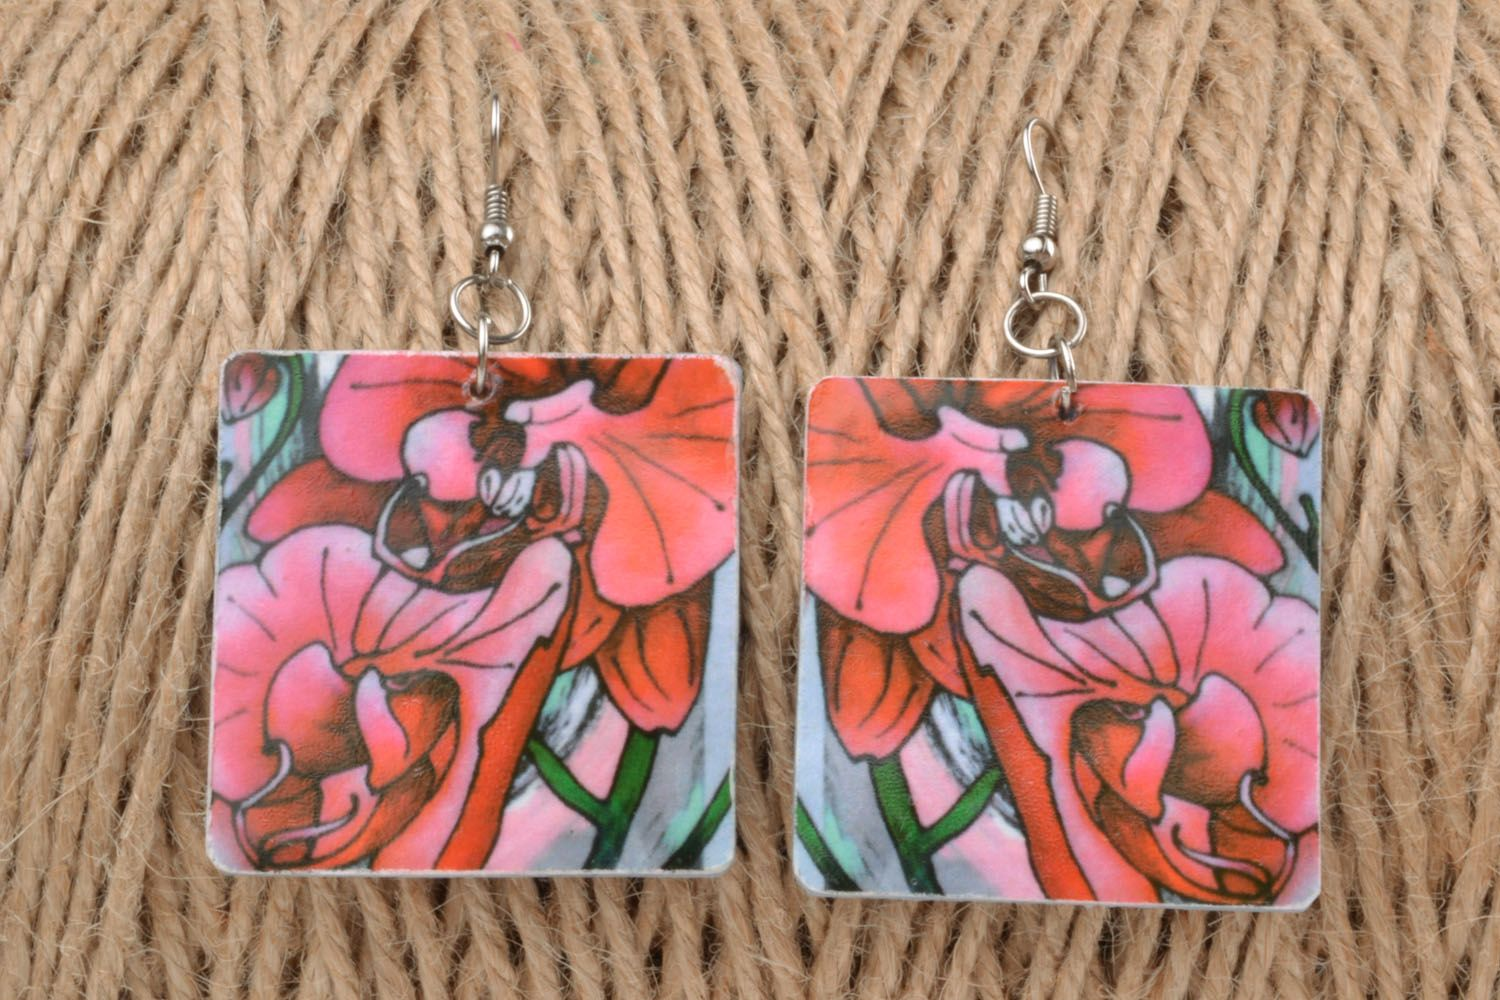 Colourful earrings made of polymer clay photo 1